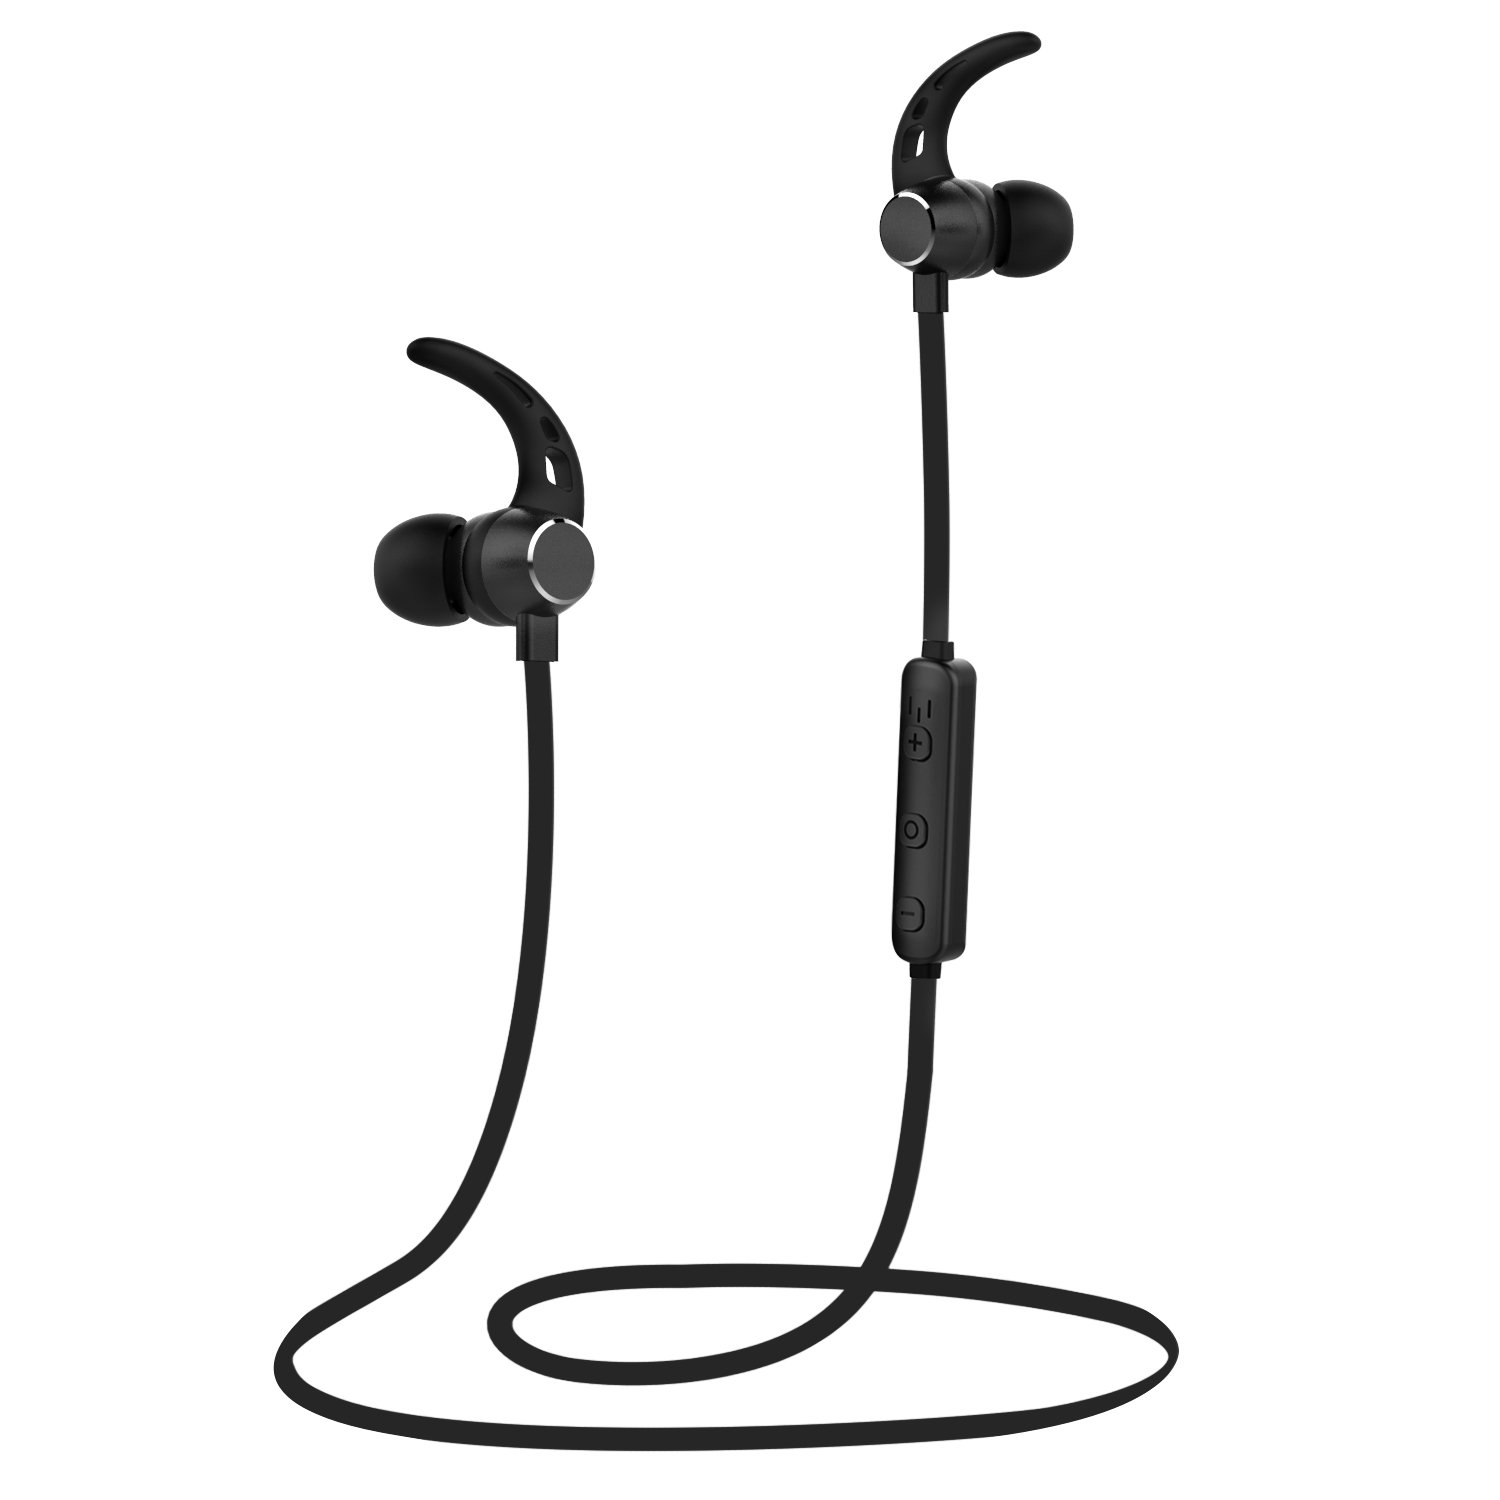 LOBKIN Wireless Headphones, Bluetooth 4.1 Lightweight Stereo Earbuds with Magnetic Connection, NANO Coating Sweatproof Sports Headset with Metallic Housing & Built-in Mic